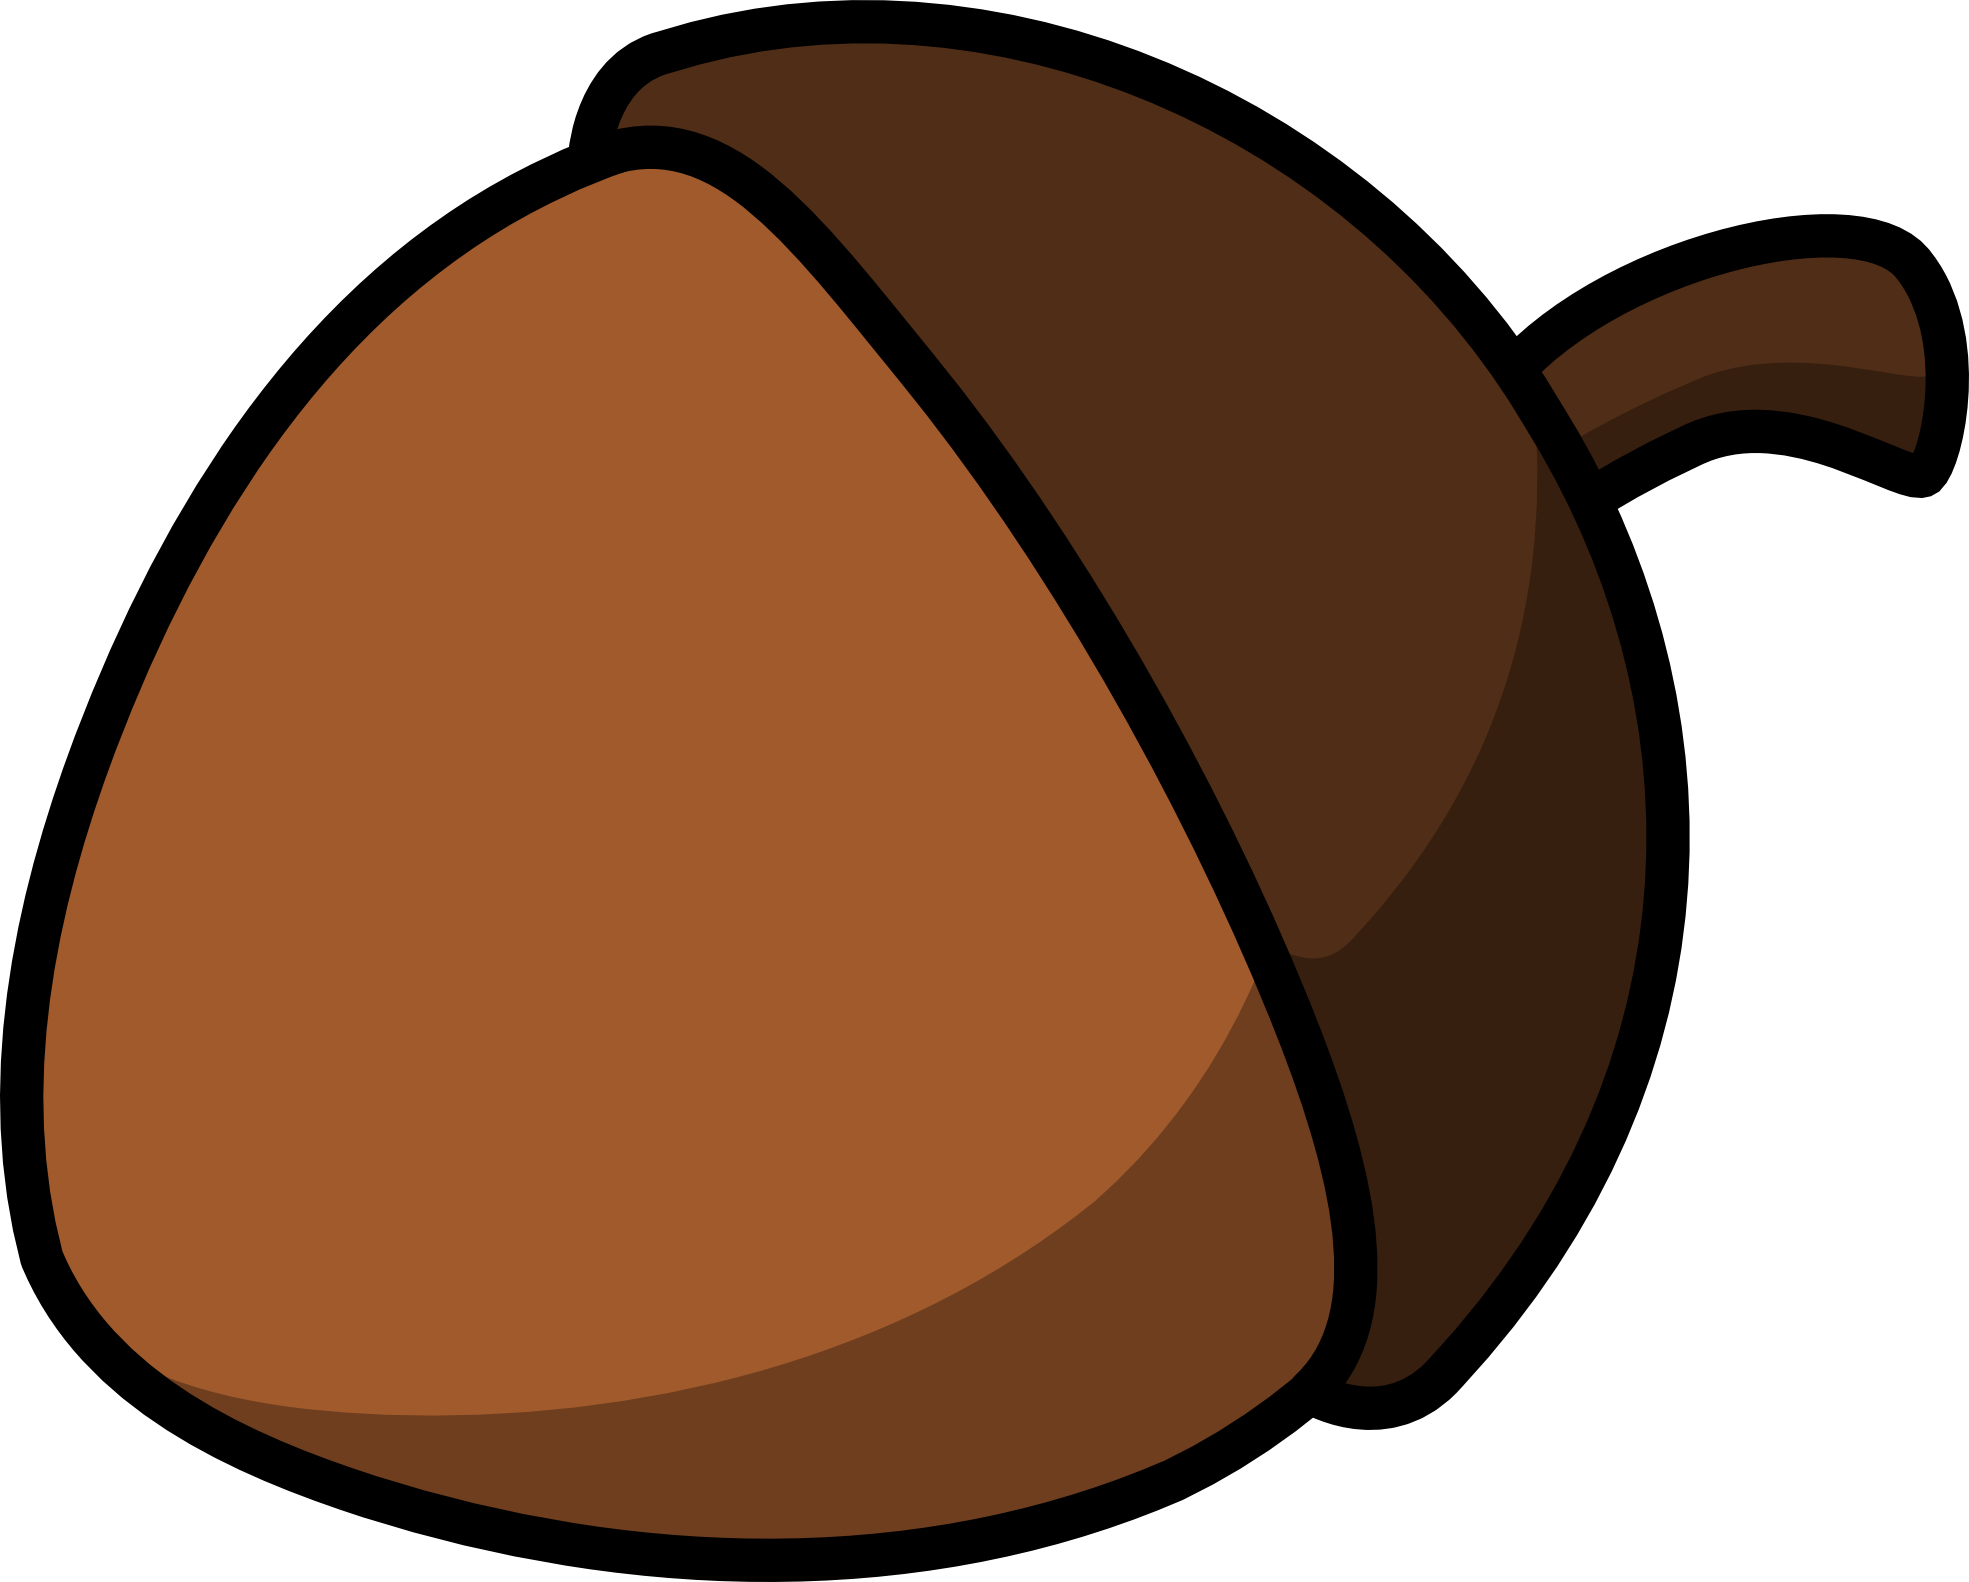 Acorn Clipart Black And White Clipart Panda Free Clipart Images